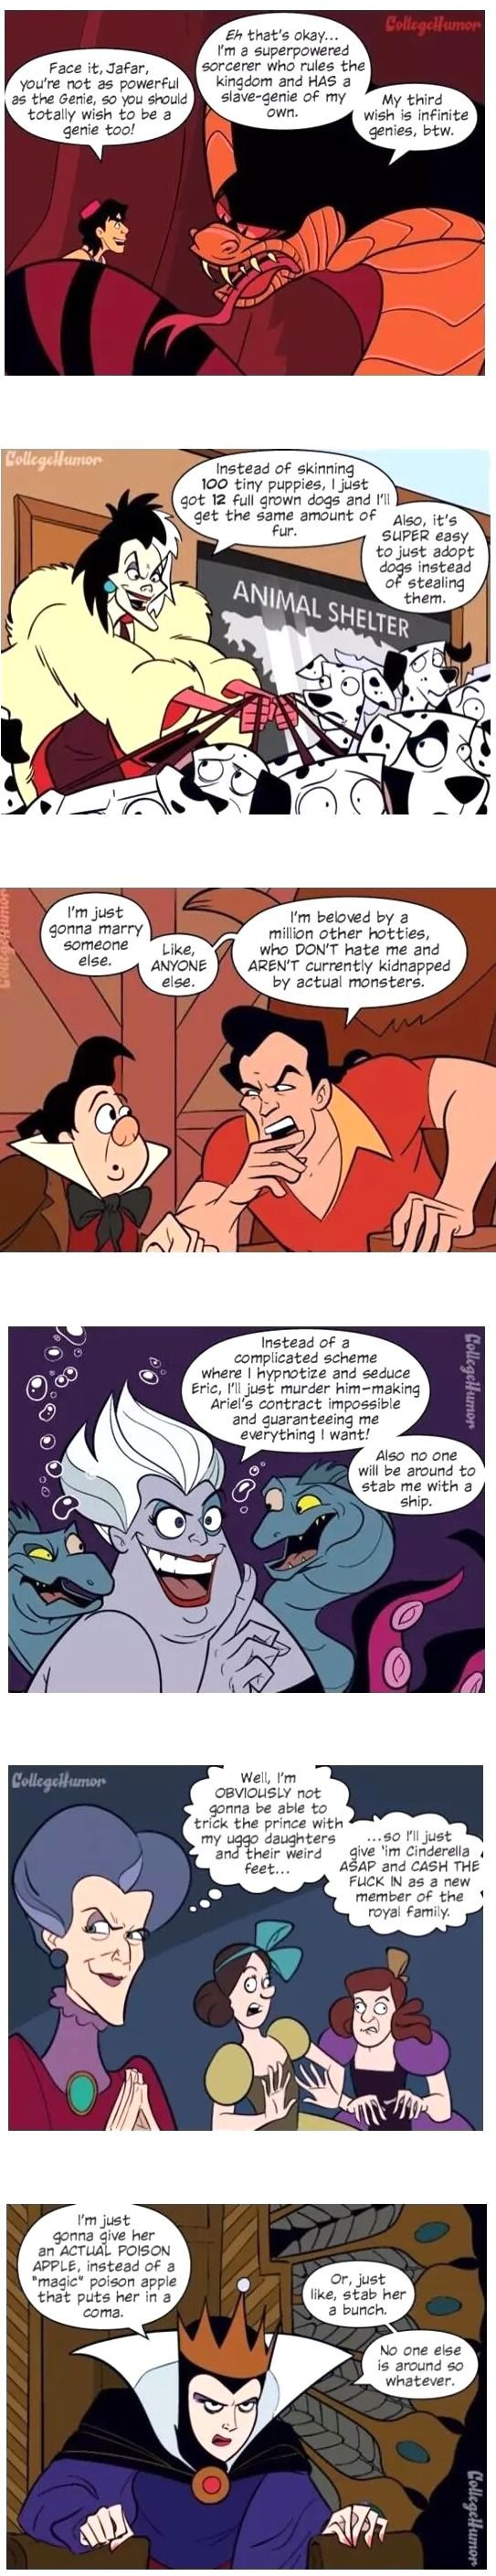 If Disney Villains Were Actually Smart - 9GAG. Sorry for the language.